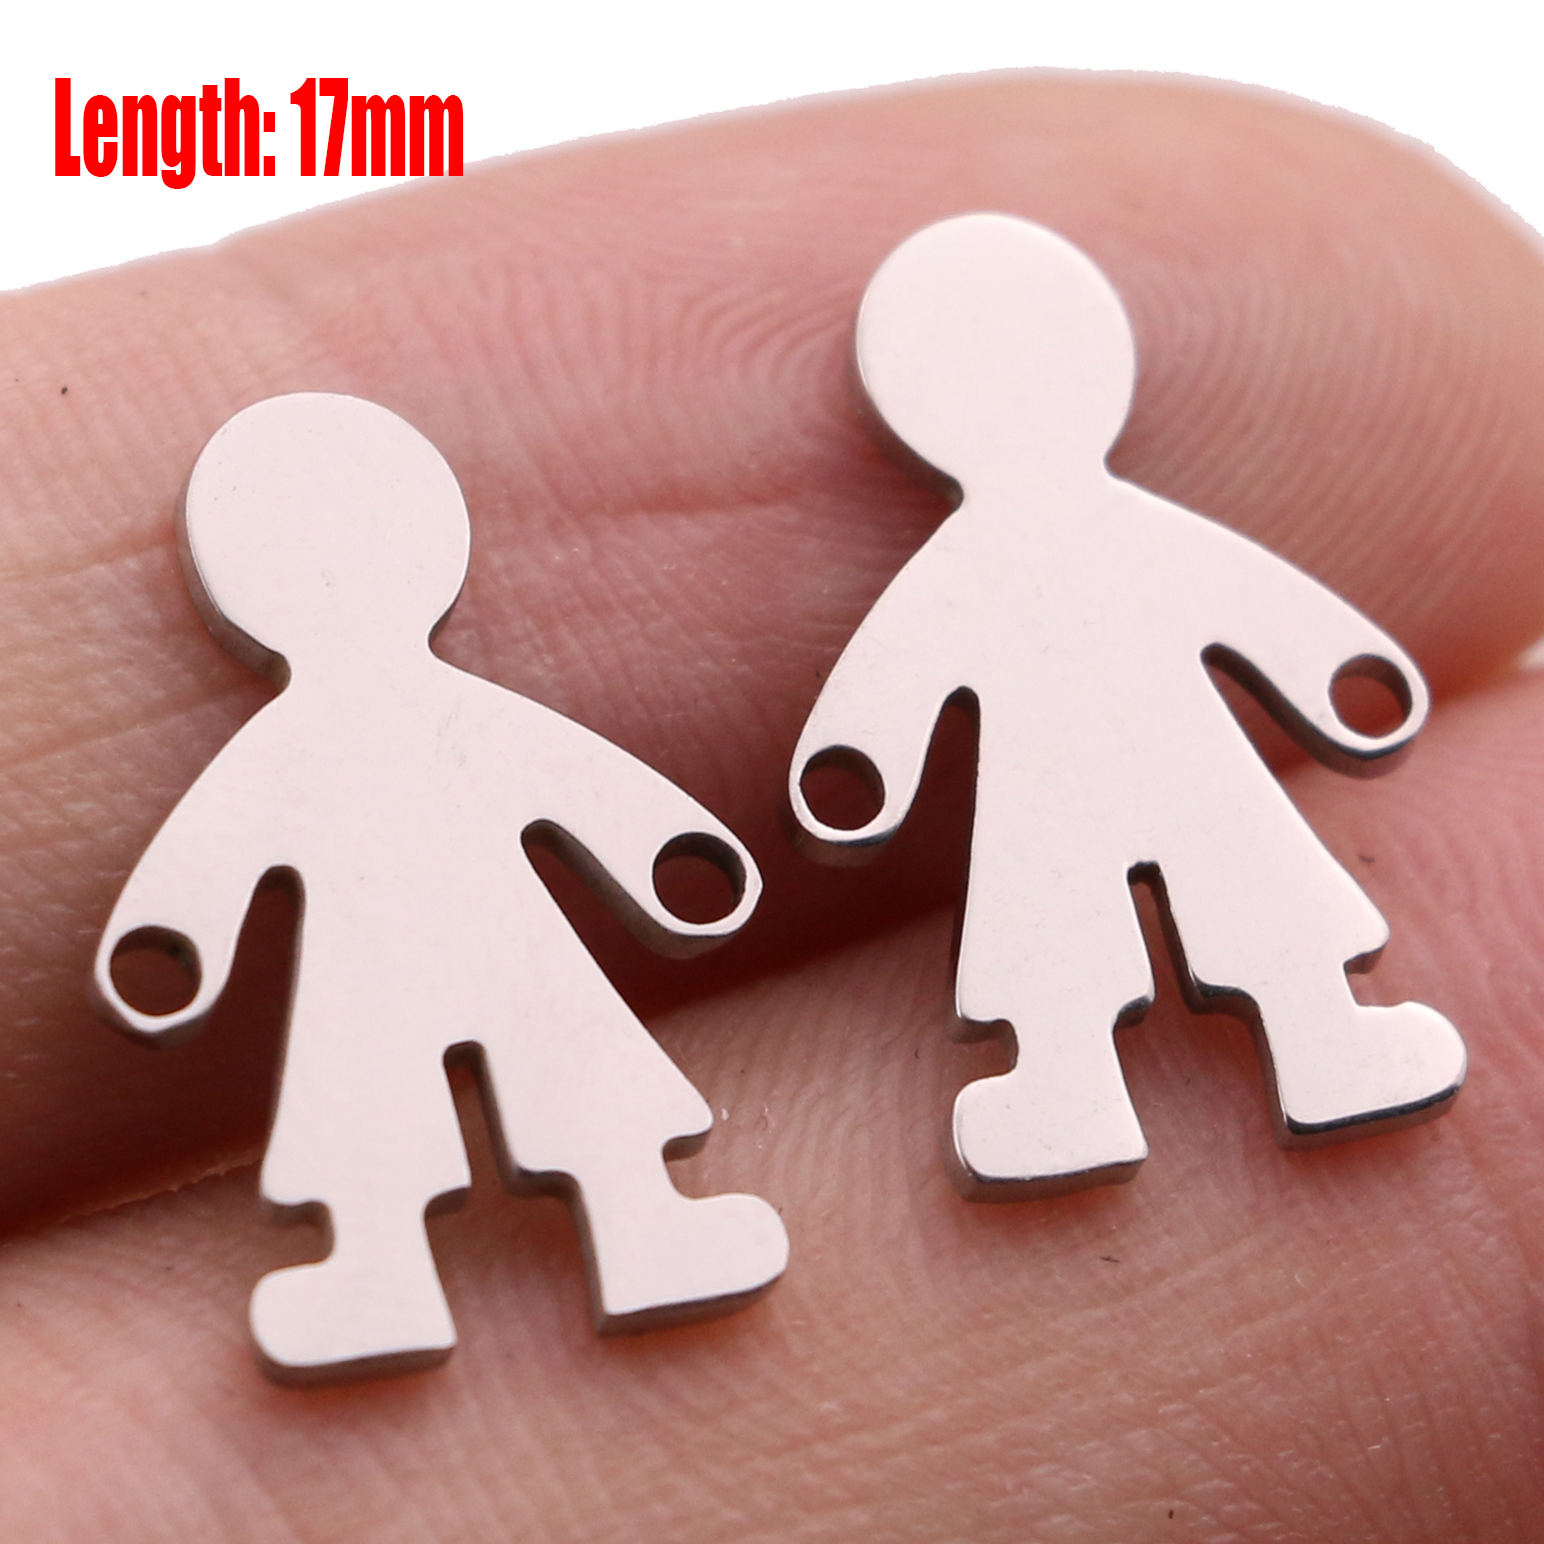 5pcs Family Chain Stainless Steel Pendant Necklace Parents and Children Necklaces Gold/steel Jewelry Gift for Mom Dad New Twice - Цвет: Steel 18